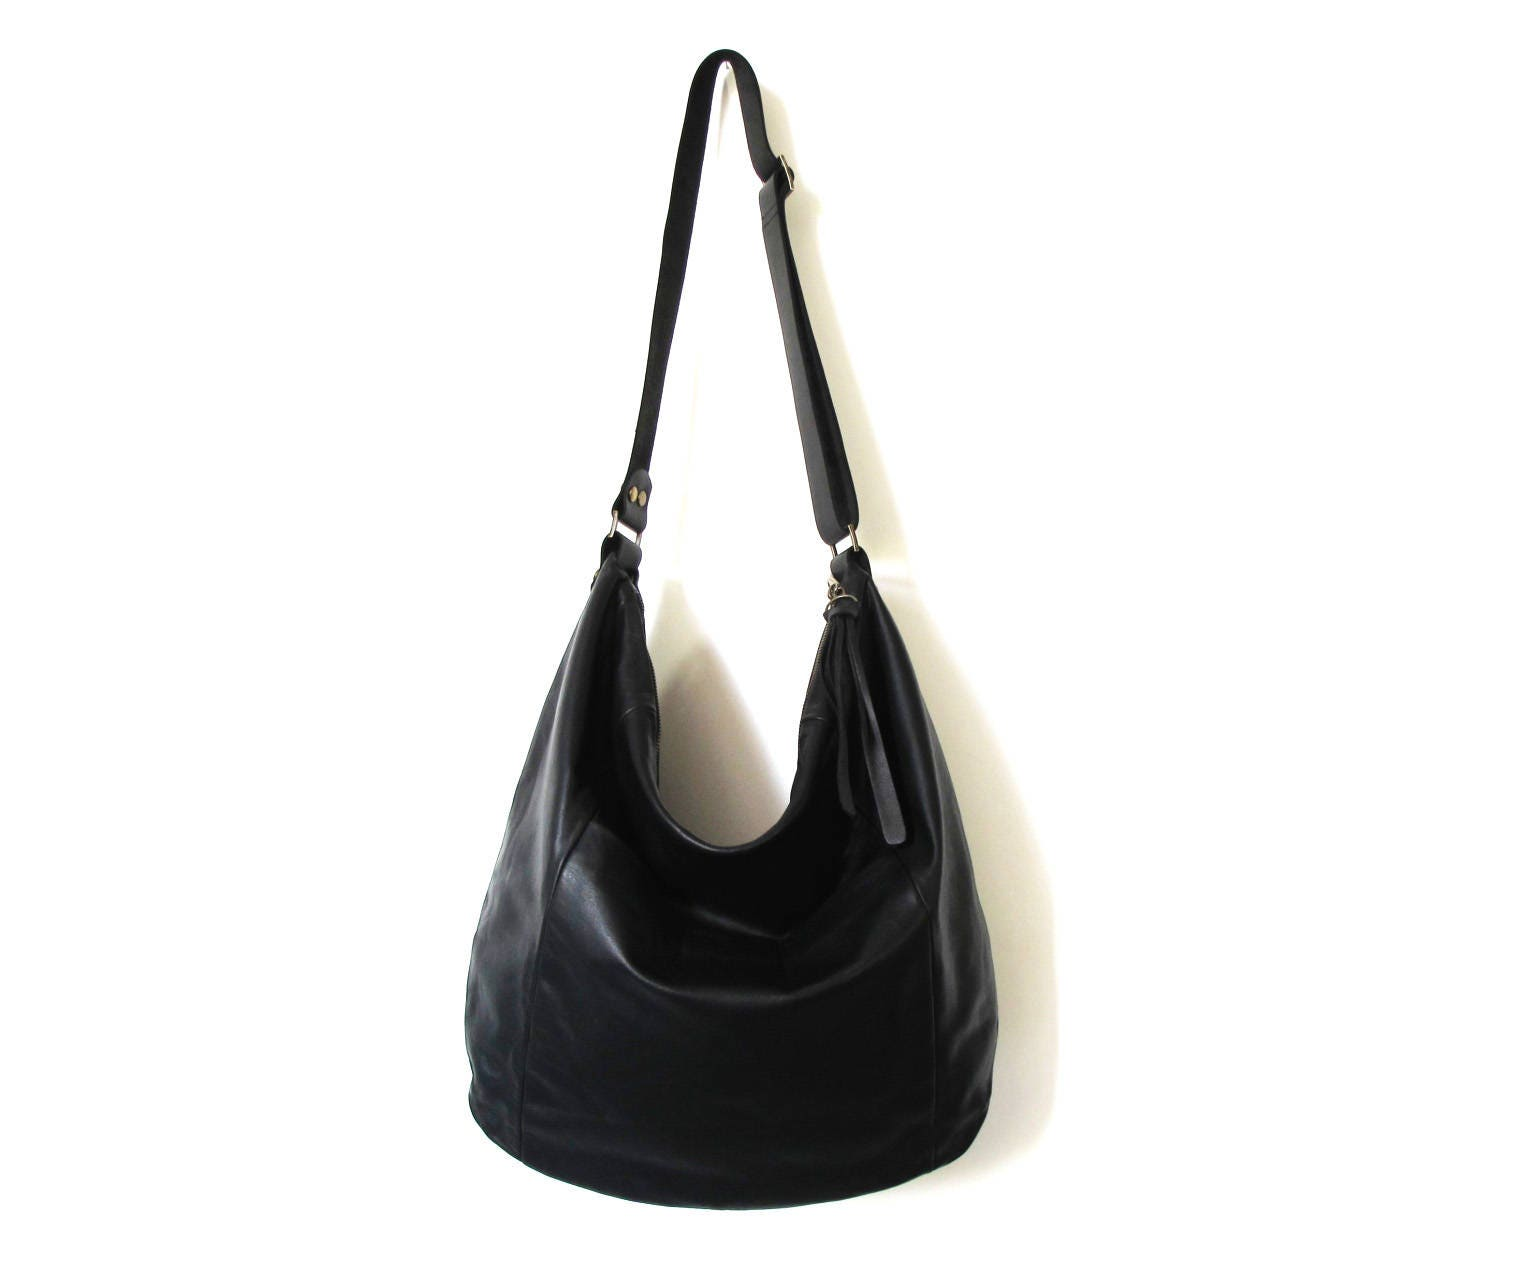 Browse the Brighton's collection of women's leather handbags, purses and totes today, including the latest red handbags, among our most popular! Skip to main content. My Account; Store Locator; Barbados Zip Top Hobo in black. Barbados Zip Top Hobo in metallic. Barbados Zip Top Hobo in black. Next.